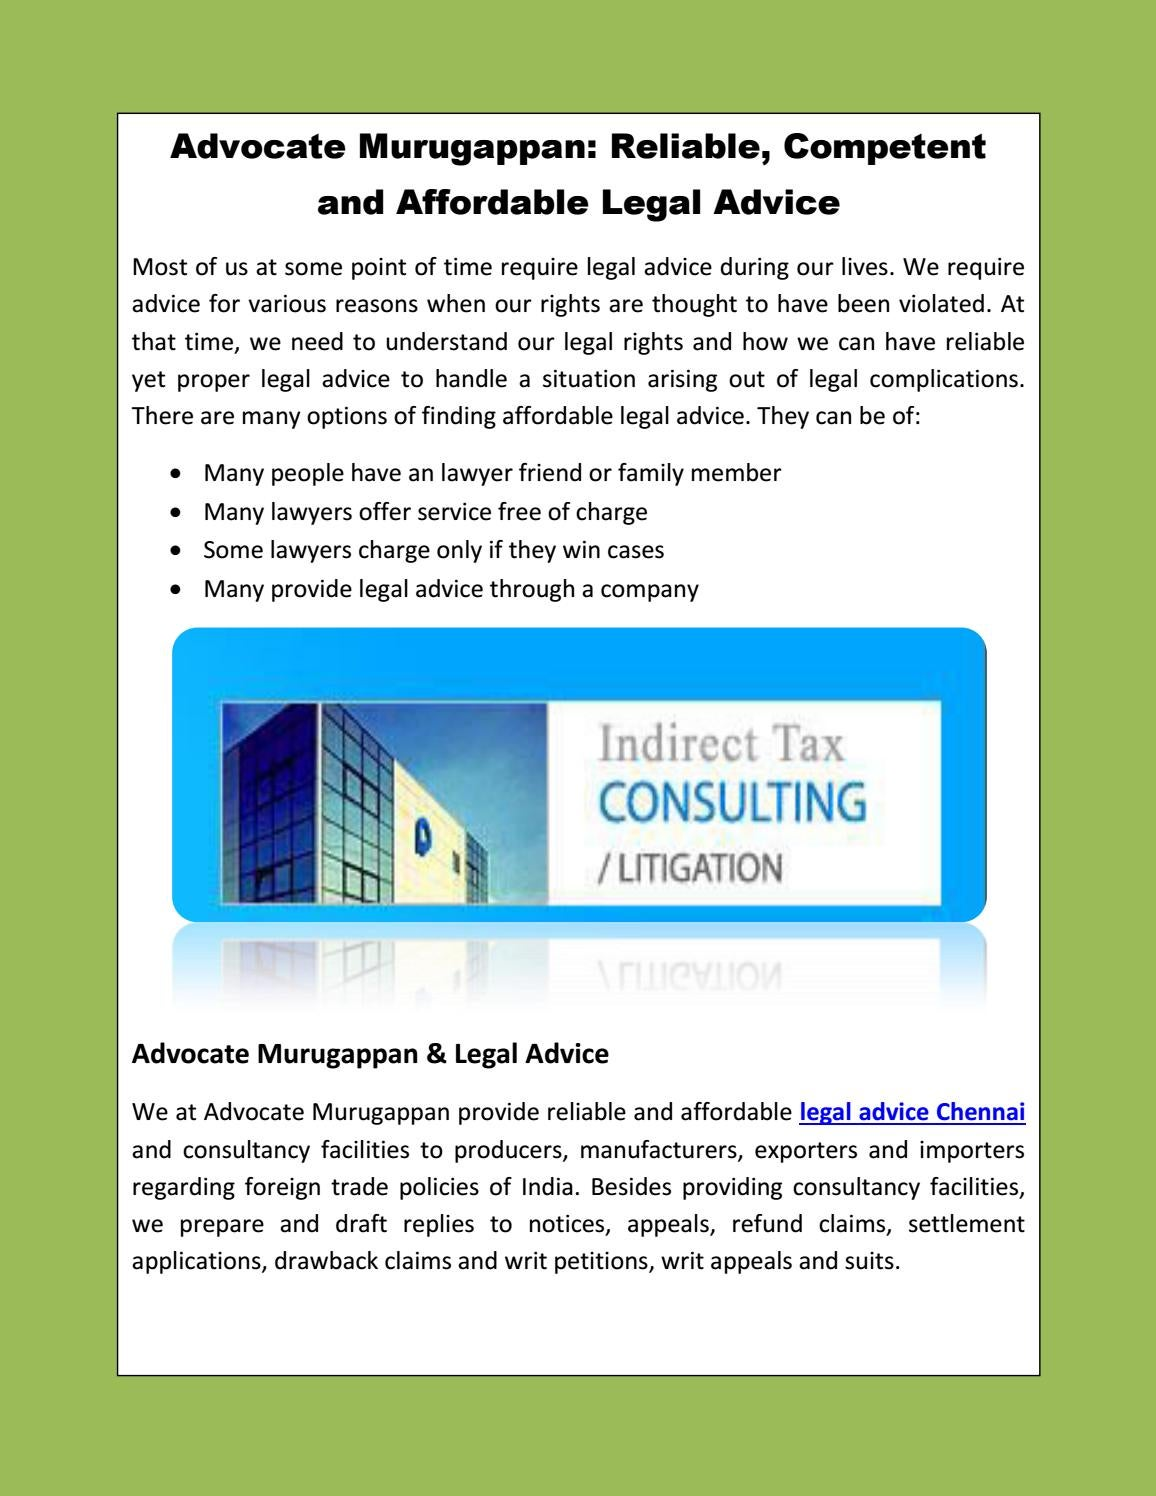 free legal advice over phone in chennai